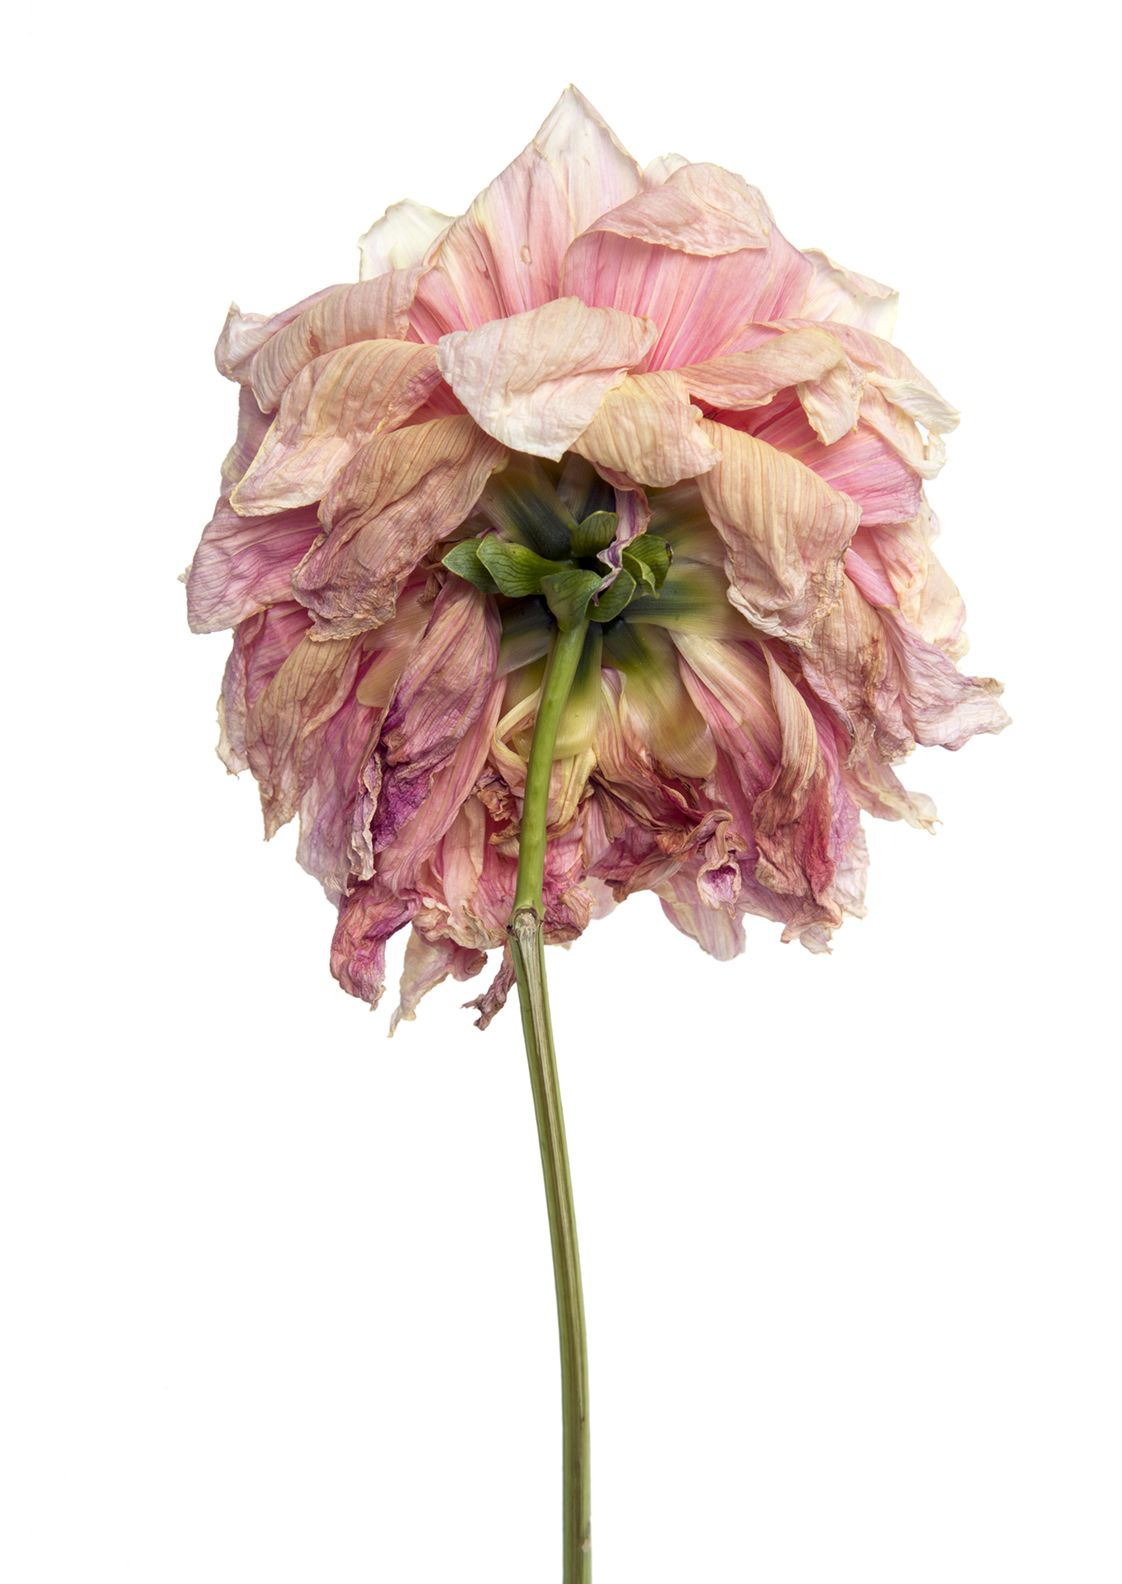 Pin by chris dangtran on bloom pinterest peony flowers and dahlia dry flowers dahlias peonies painted walls holding hands textile art air poppy frozen mightylinksfo Gallery